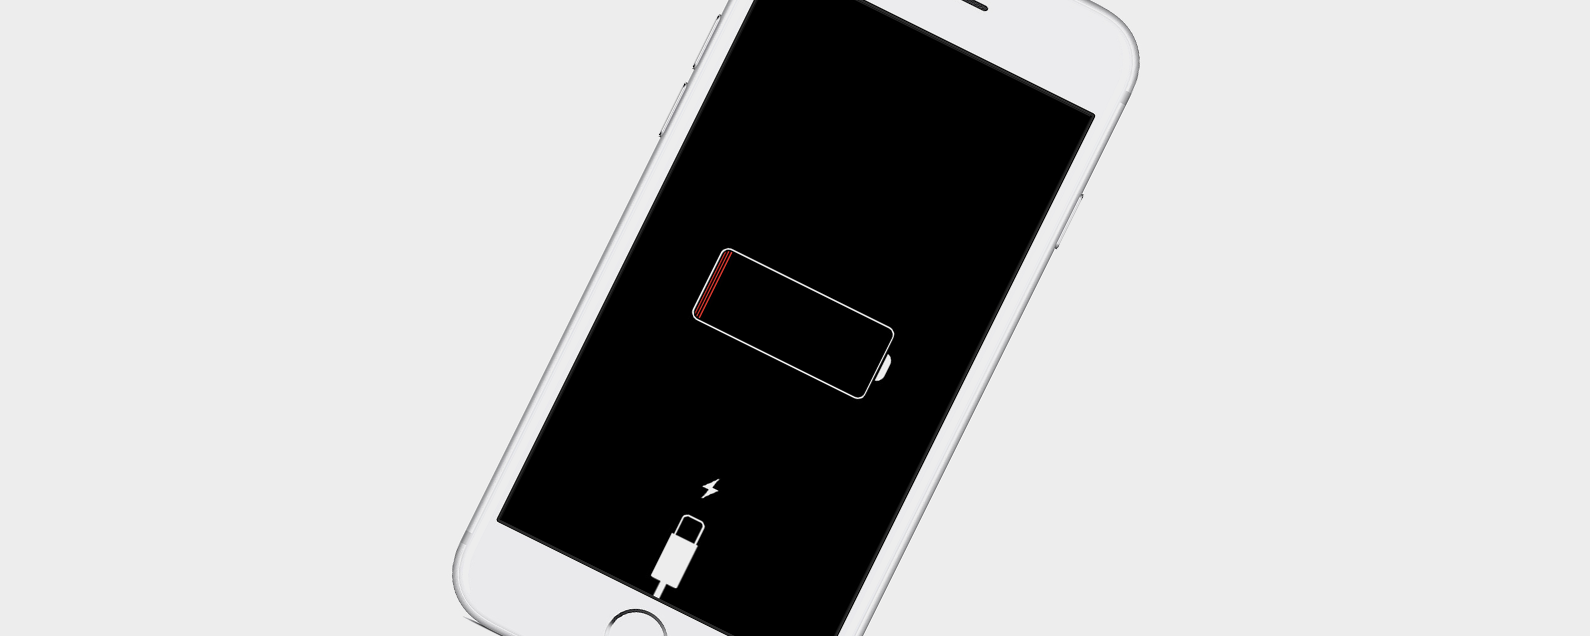 find my iphone dead battery my iphone won t charge troubleshooting tips amp tricks to 16918